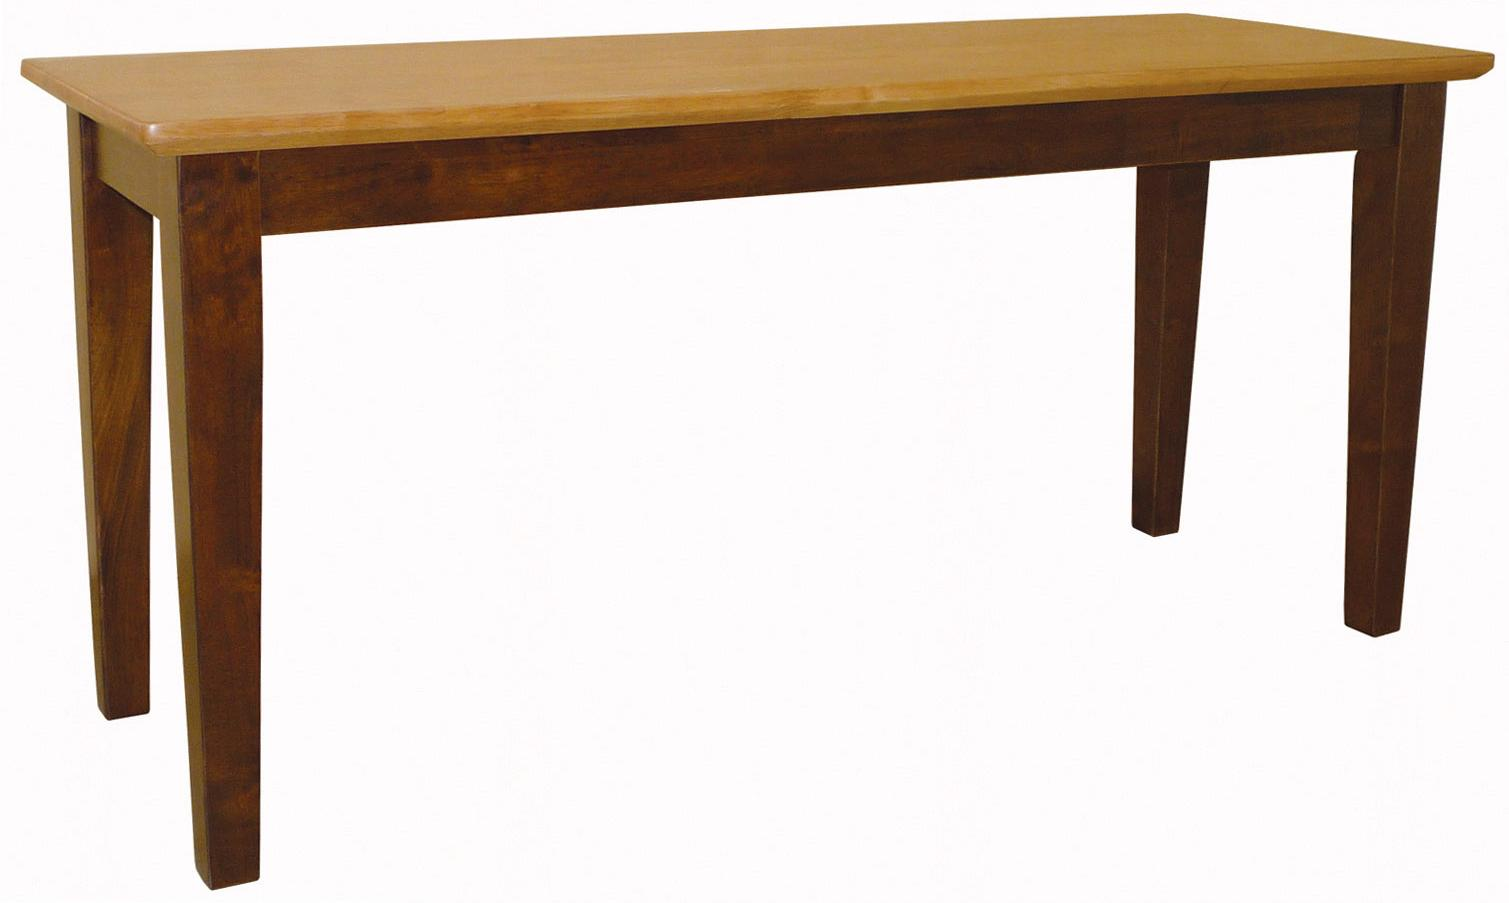 John Thomas Dining Essentials Contemporary Dining Bench - Item Number: BE58-39